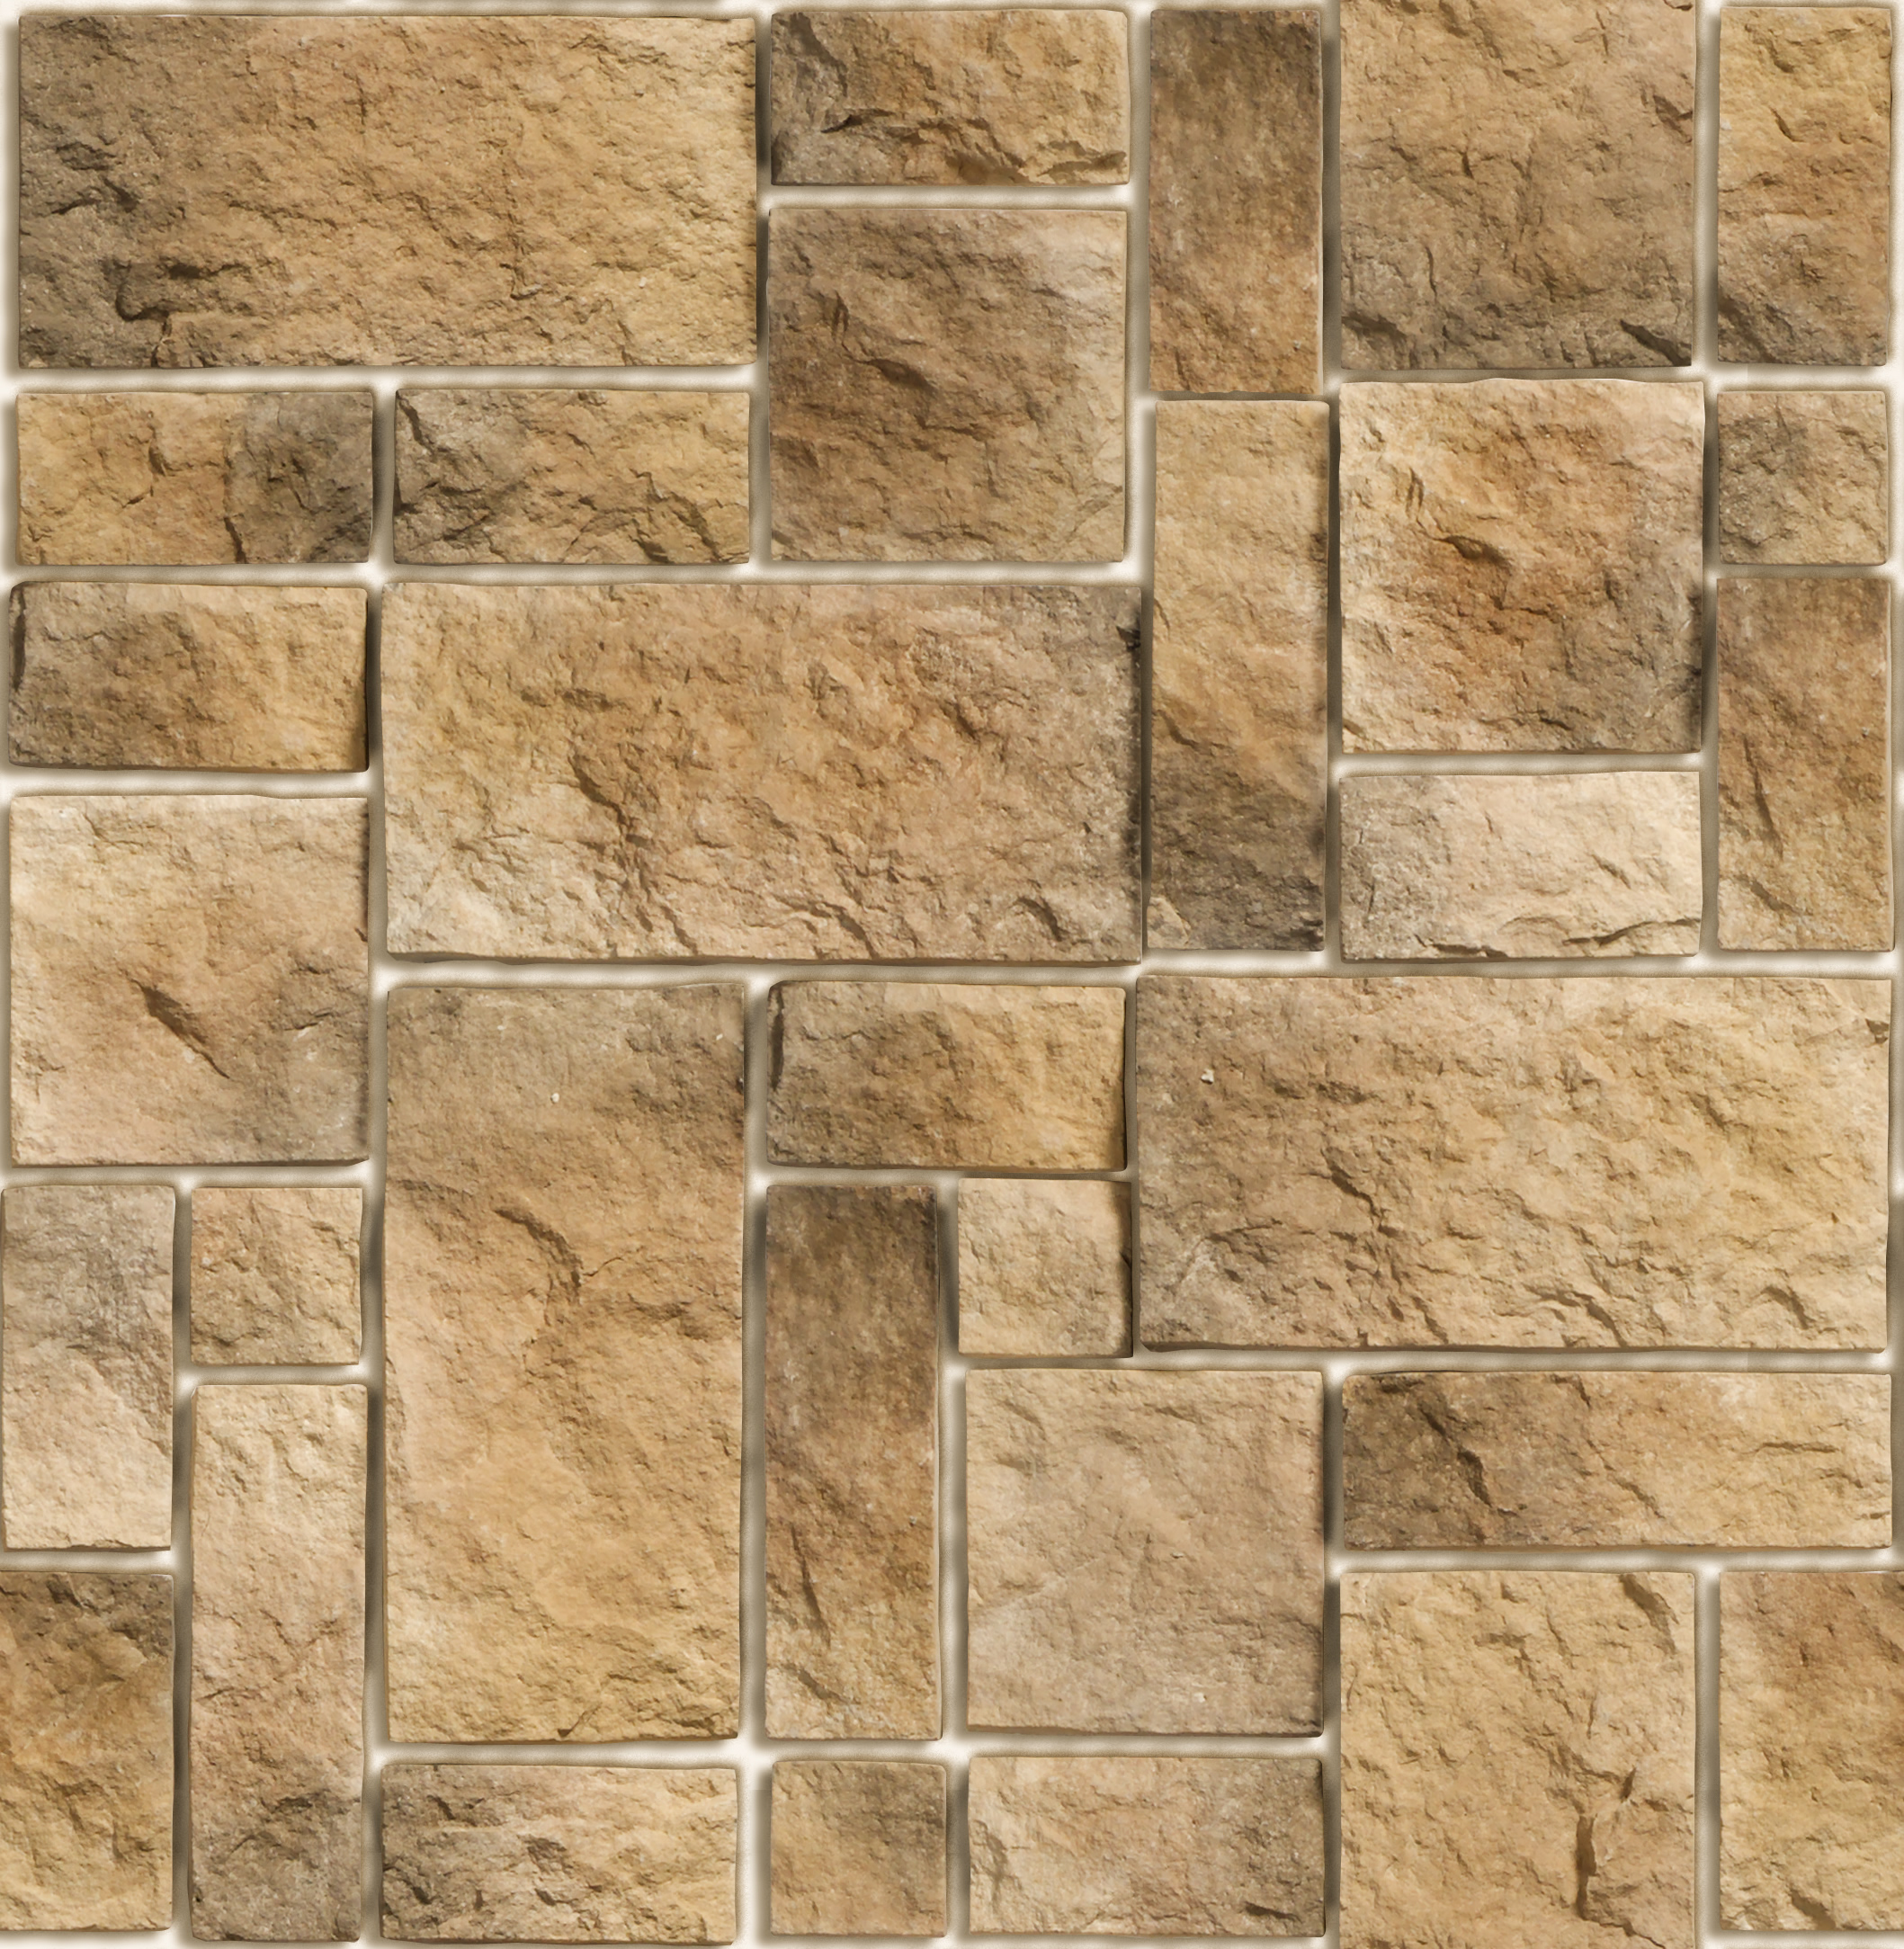 Stone Hewn Tile Texture Wall Download Photo